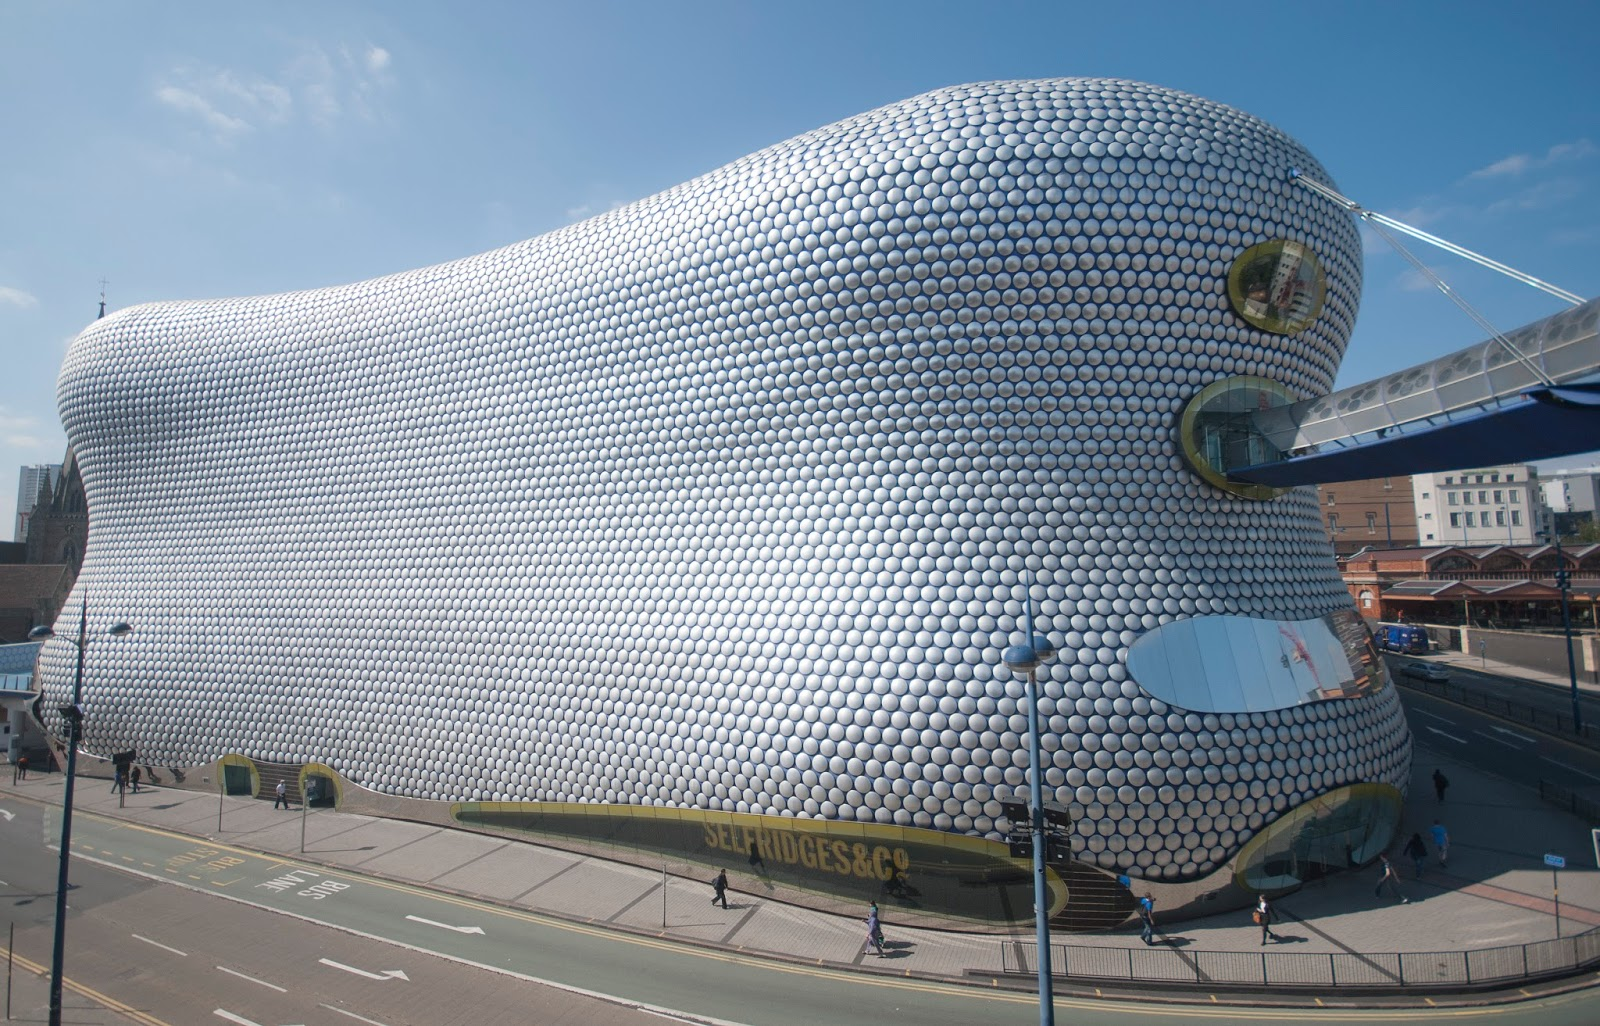 Selfridges in Birmingham UK - Staycations UK - motherdistracted.co.uk